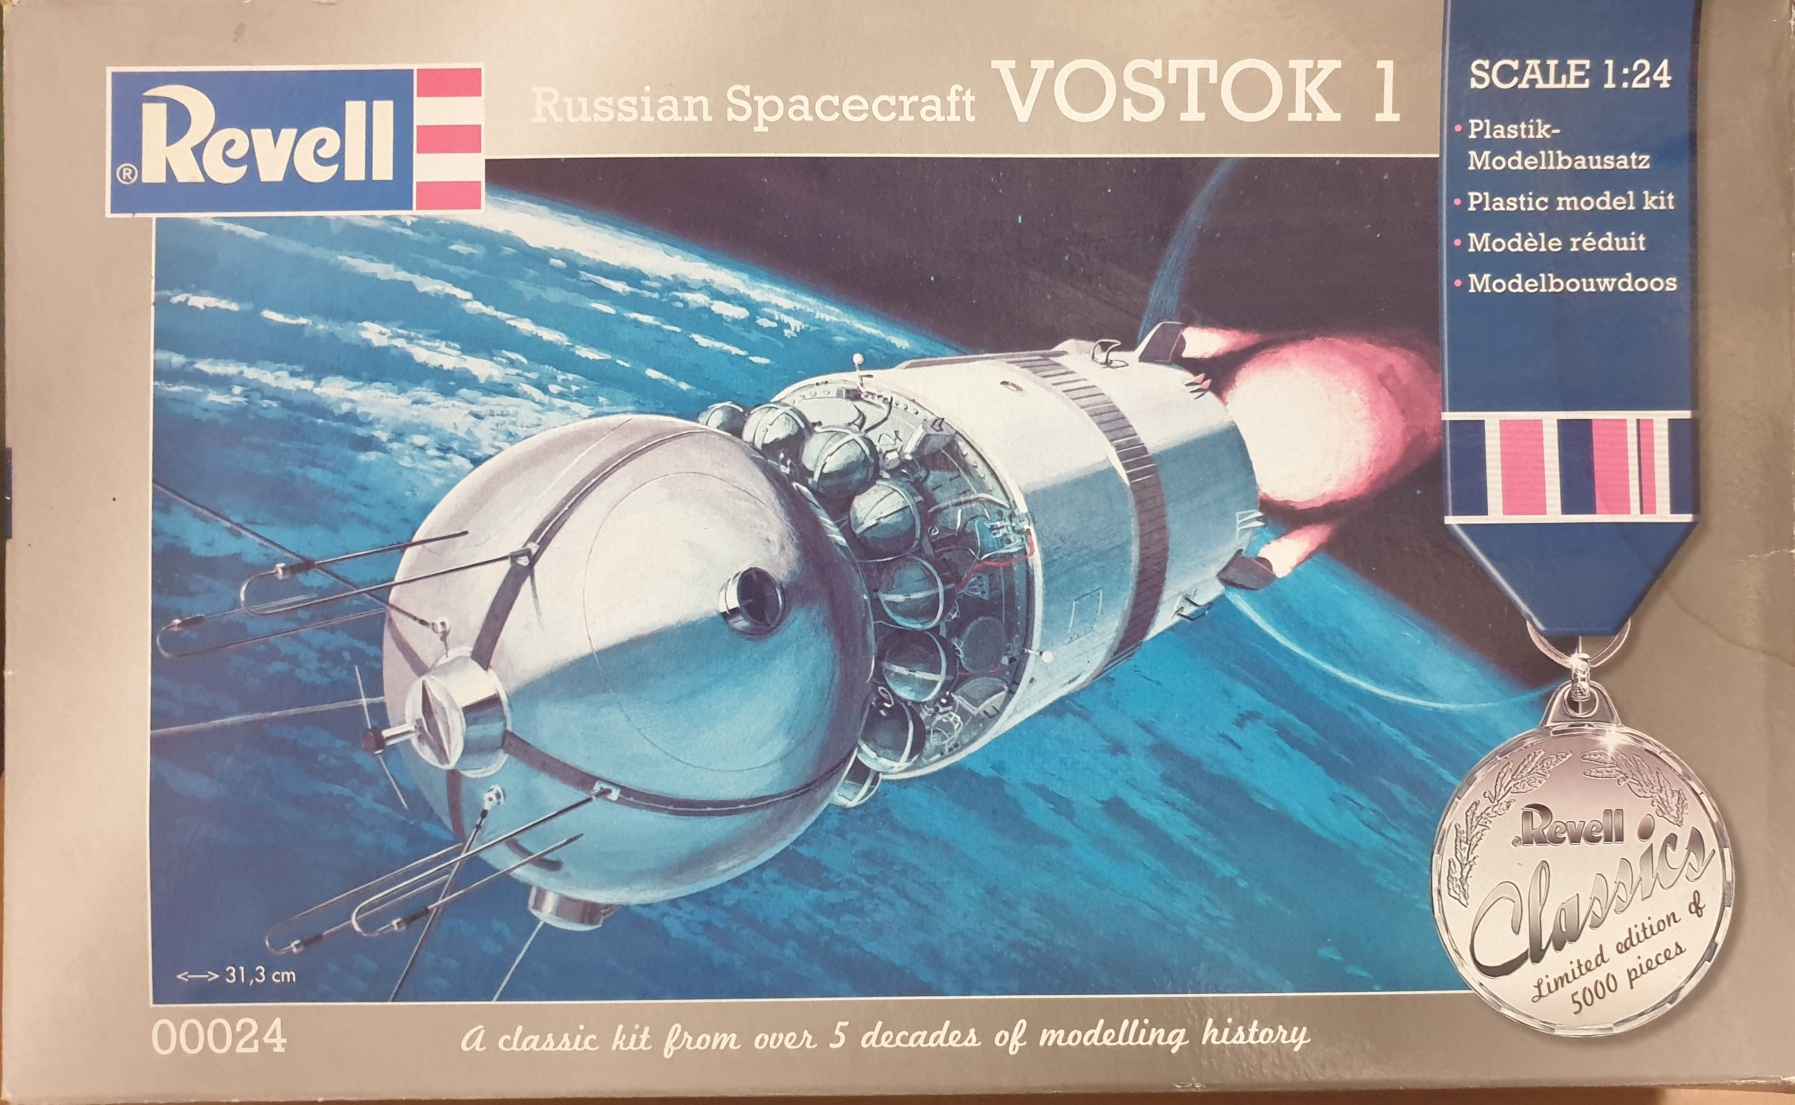 Revell 00024 Russian Spacecraft VOSTOK 1